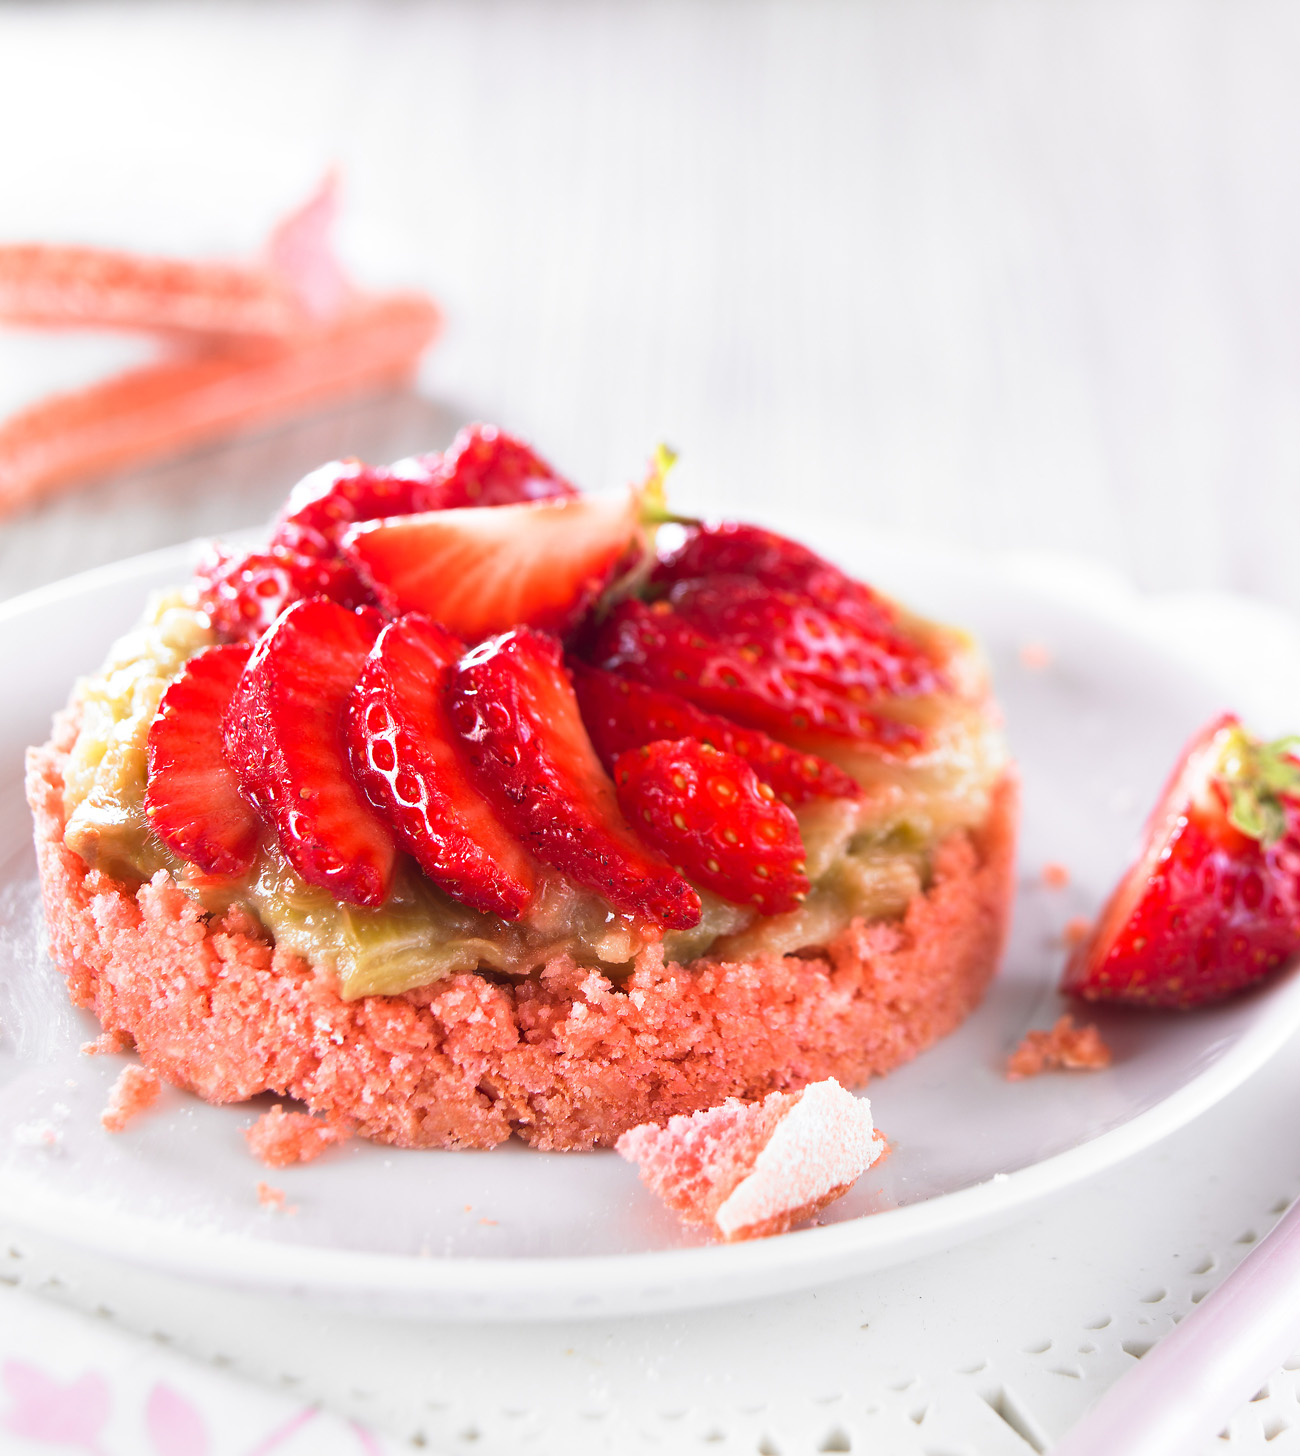 Biscuits rose fraise rhubarbe Equilibre HD